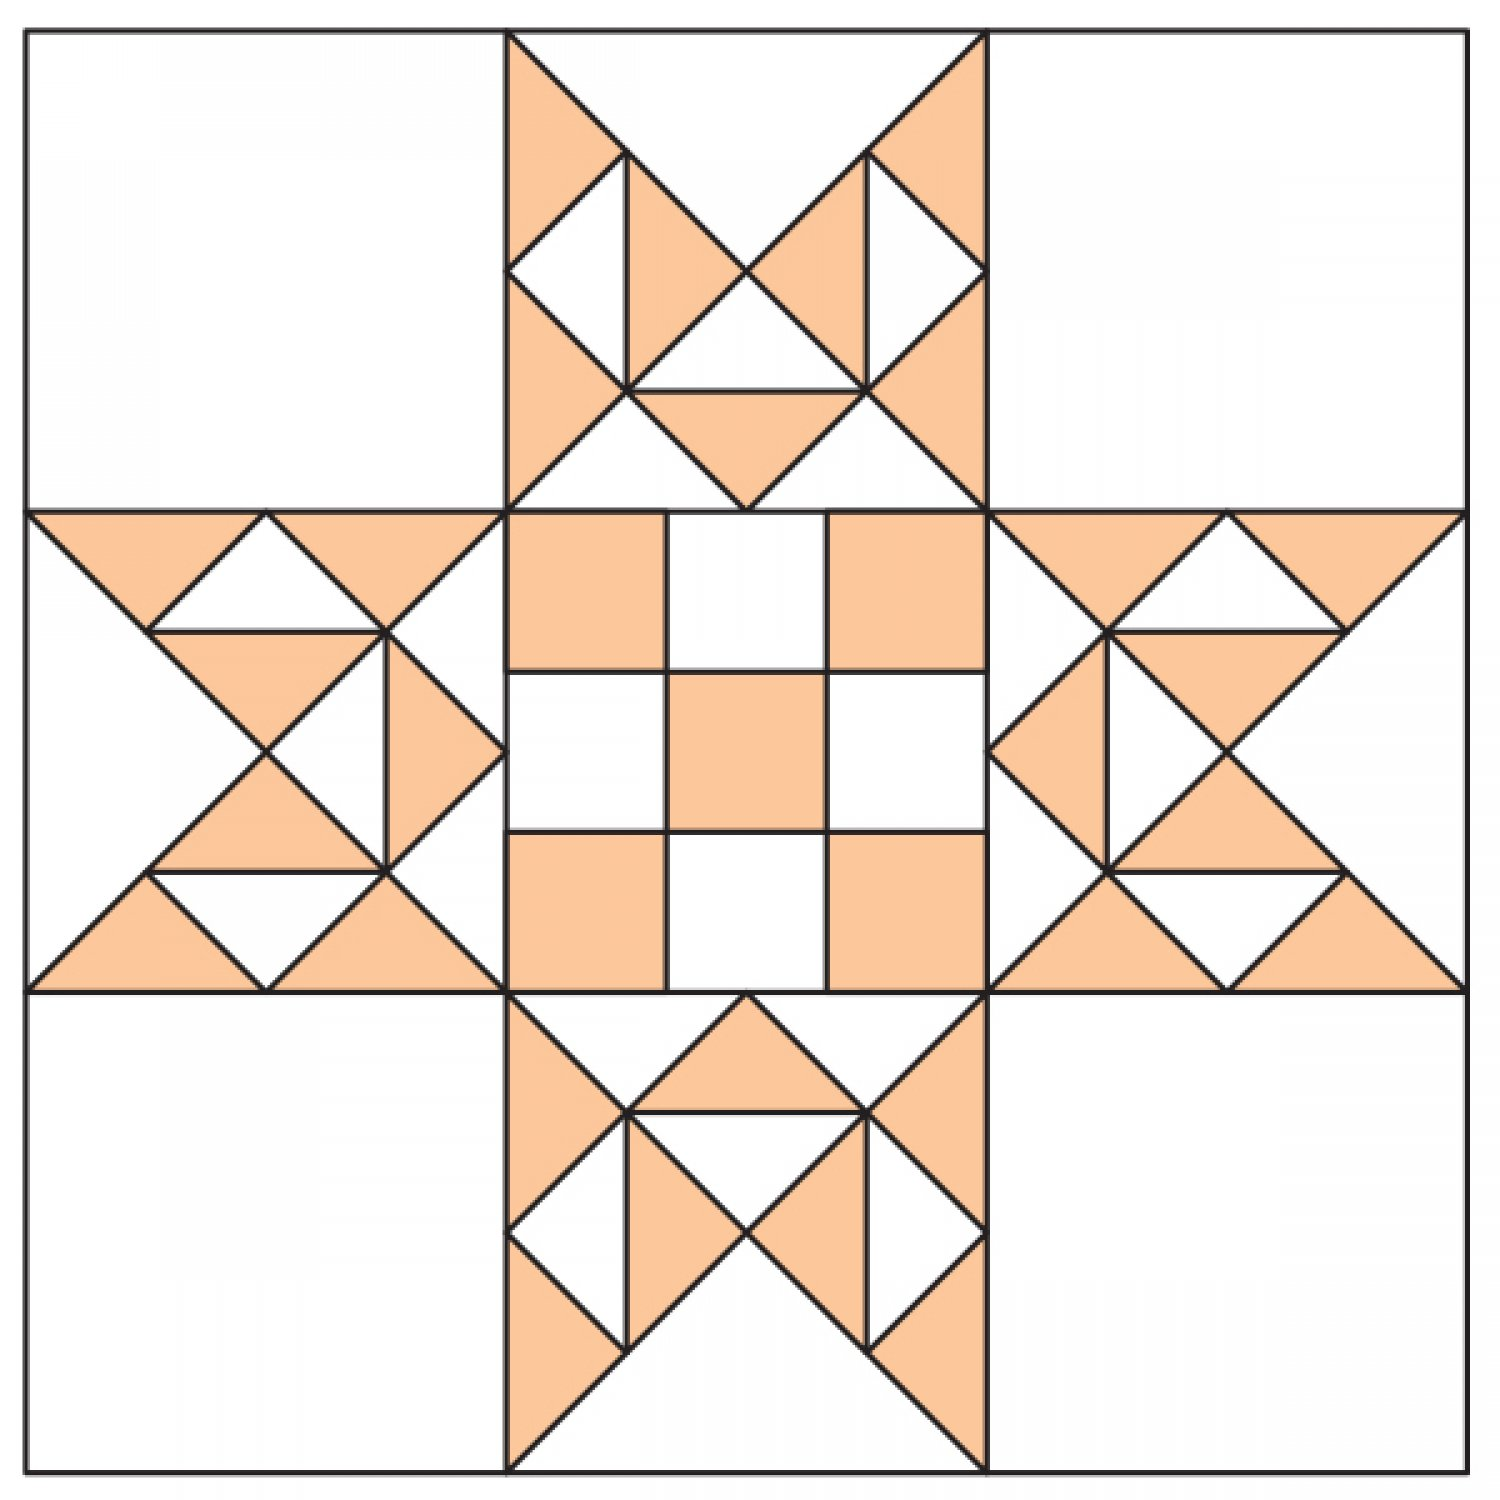 Quilt Block Patterns In Public Domain : Dolly Madison s Star Quilt Block AllPeopleQuilt.com